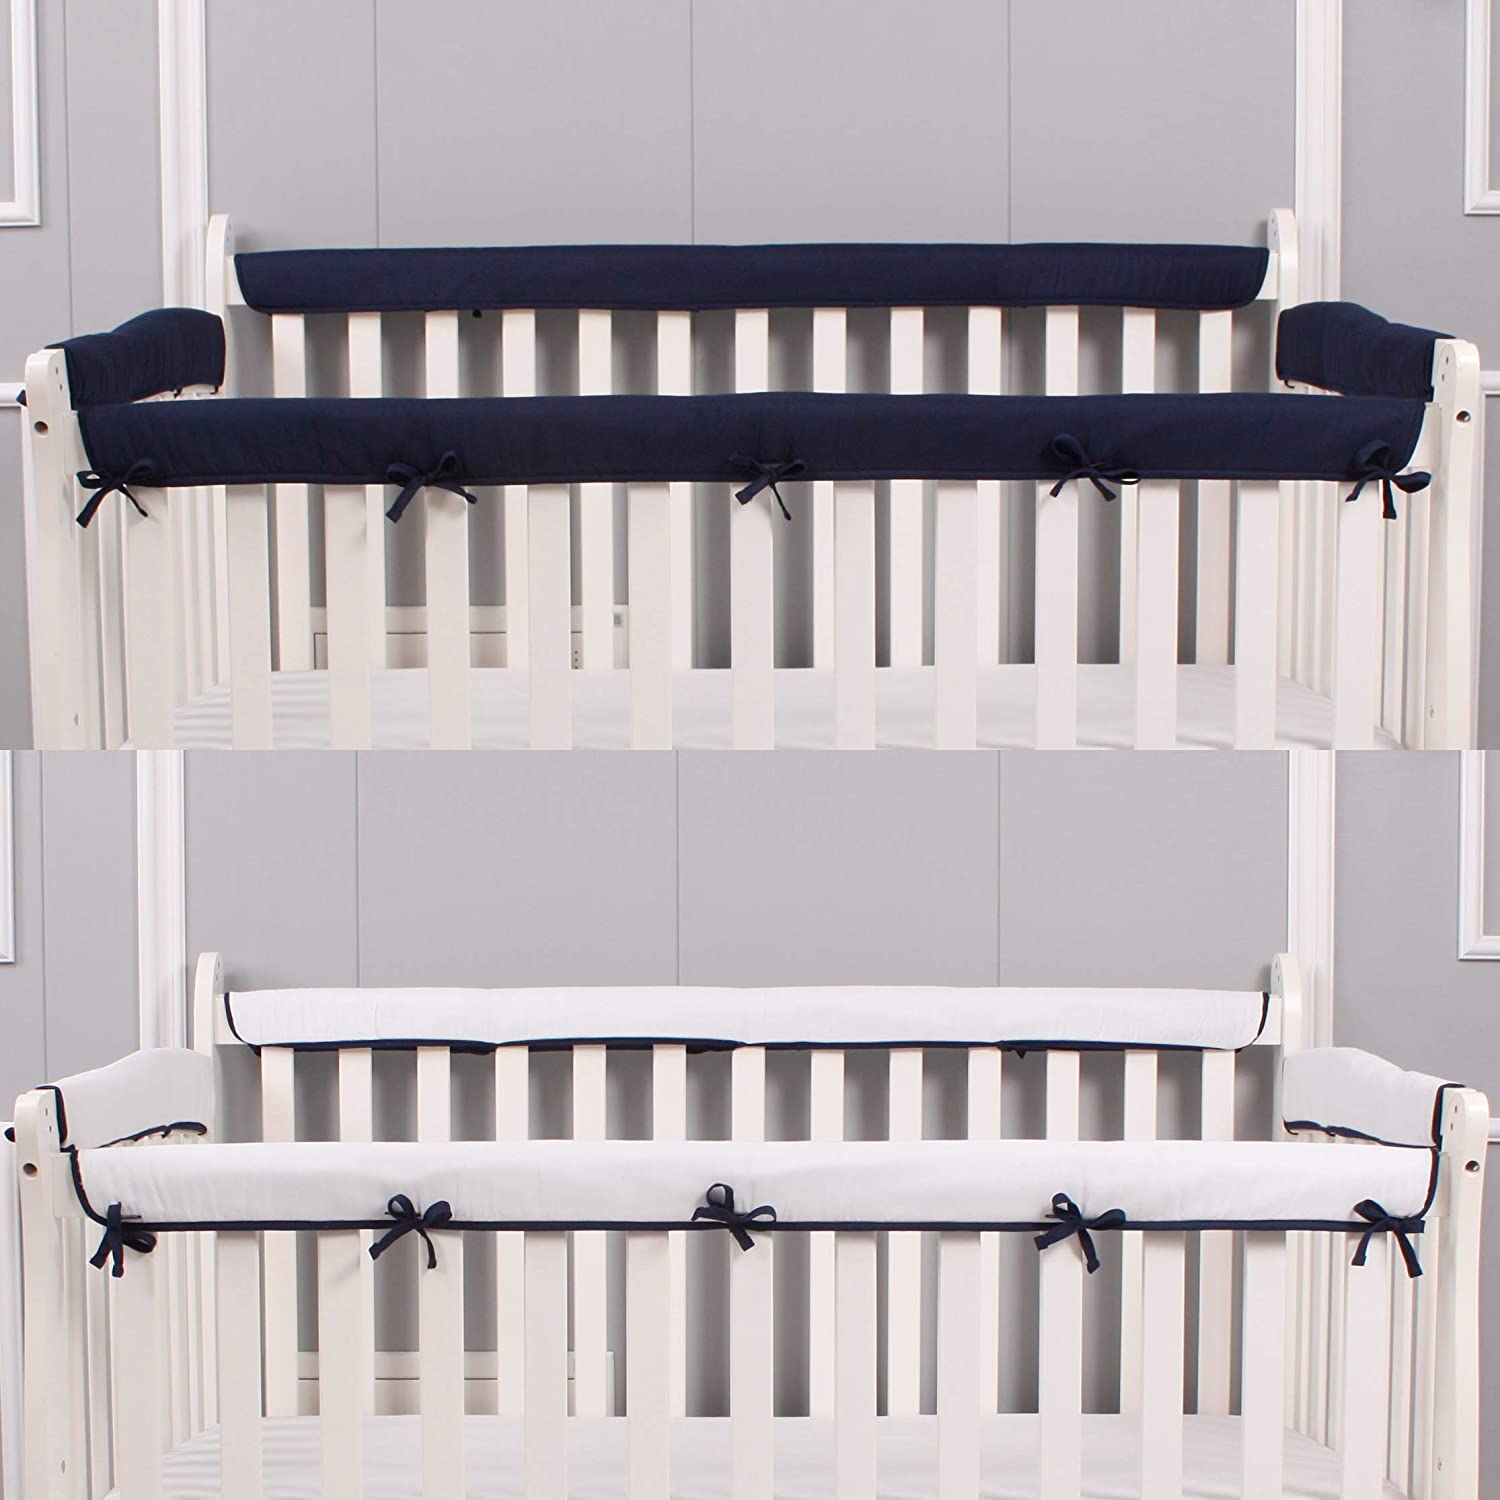 Belsden 4 Pack Safe Crib Rail Cover Set for Entire Crib Rails, Soft Padded Breathable Crib Teething Guard and Protector for Baby Boys Girls, Reversible Colors, Navy & White